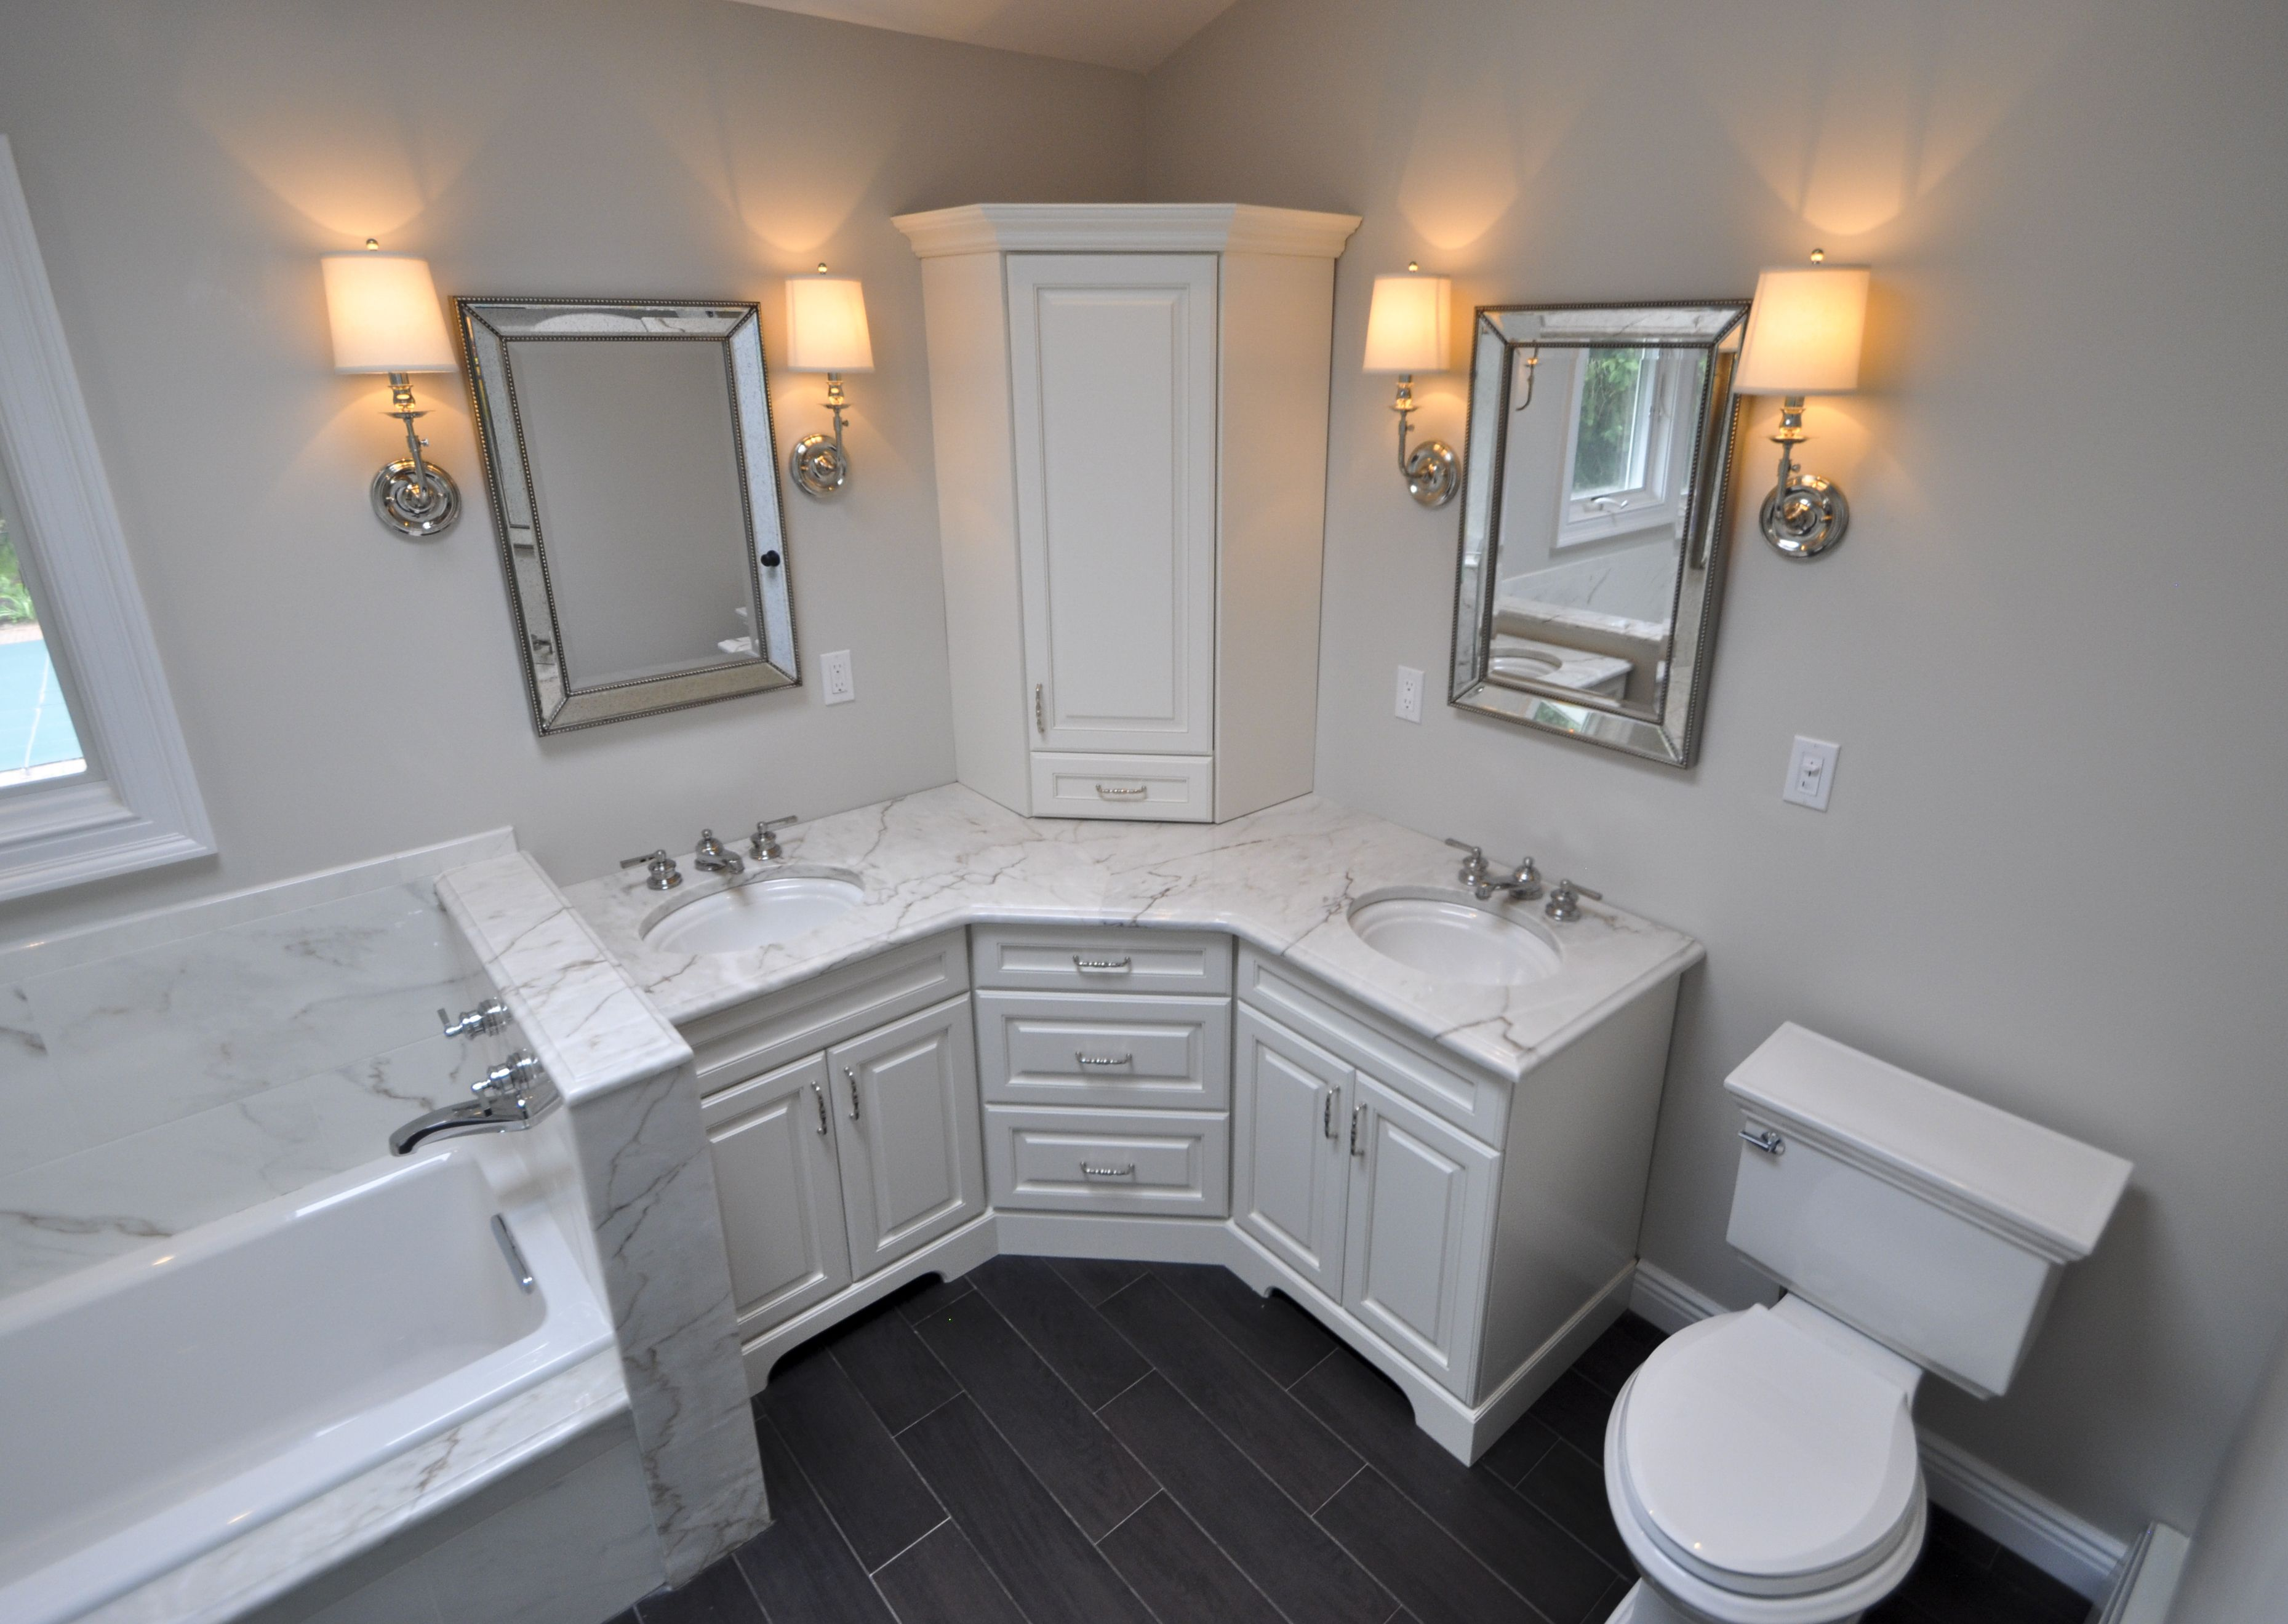 Custom Master Bathroom With Double Corner Vanity Tower Cabinet Wall Sconces Toilet And Built